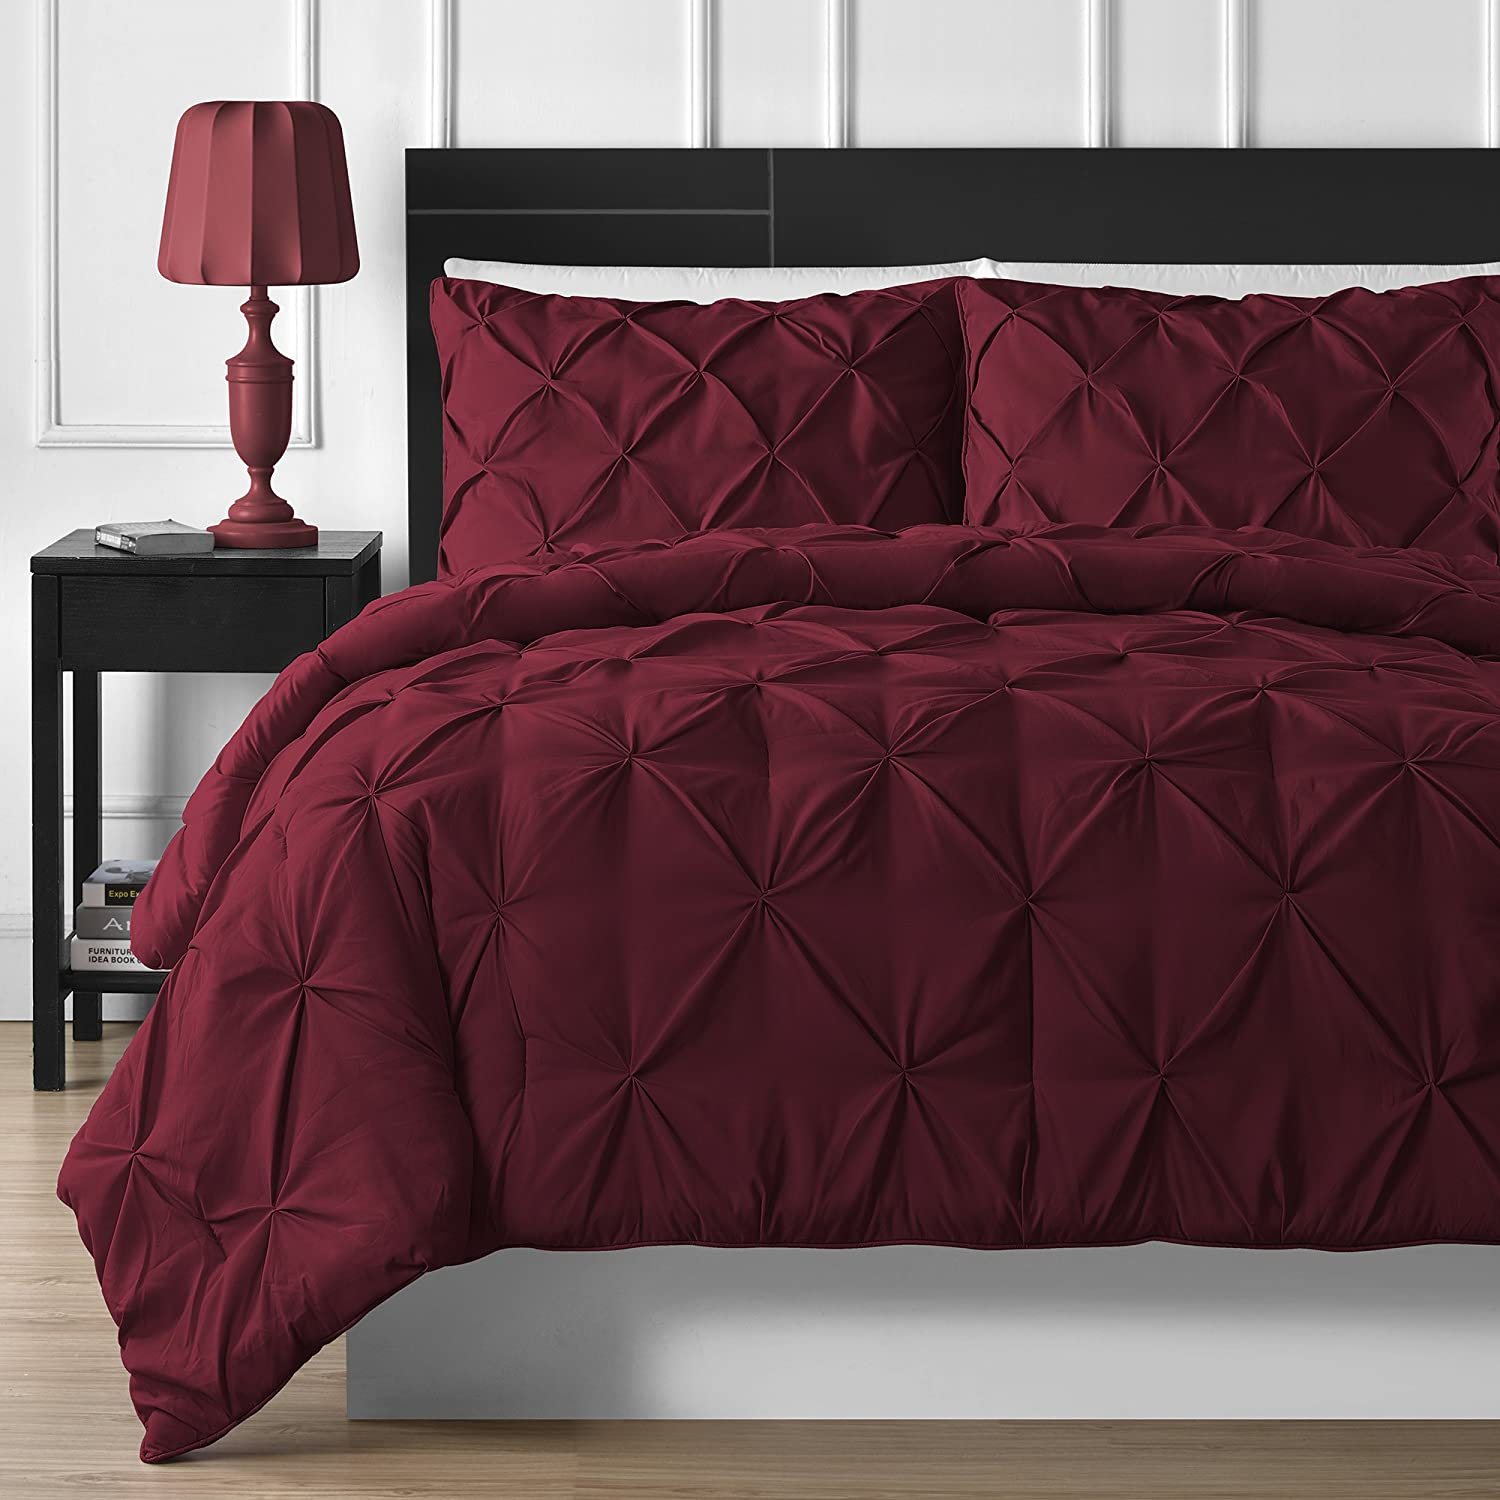 3 Piece Luxurious Pinch Pleat Comforter Set Burgundy